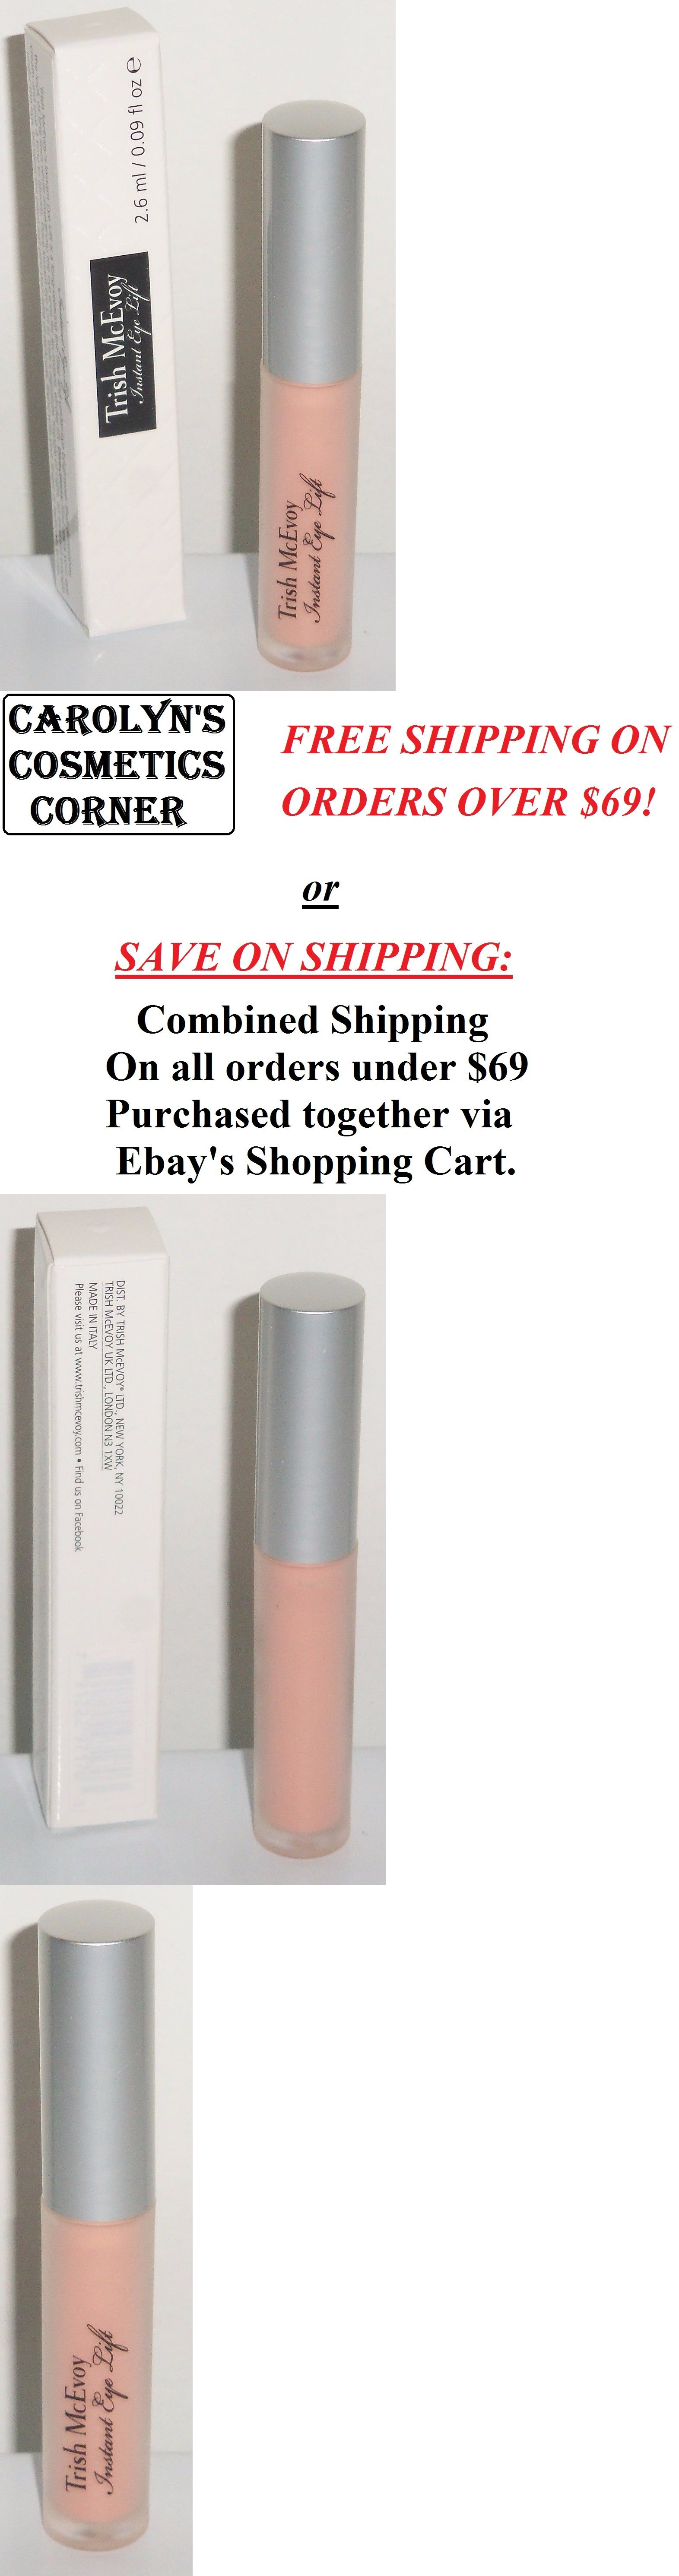 Concealer: Trish Mcevoy Instant Eye Lift - Shade 1 - 0.09Oz Full Size Brand New Boxed -> BUY IT NOW ONLY: $35.88 on eBay!